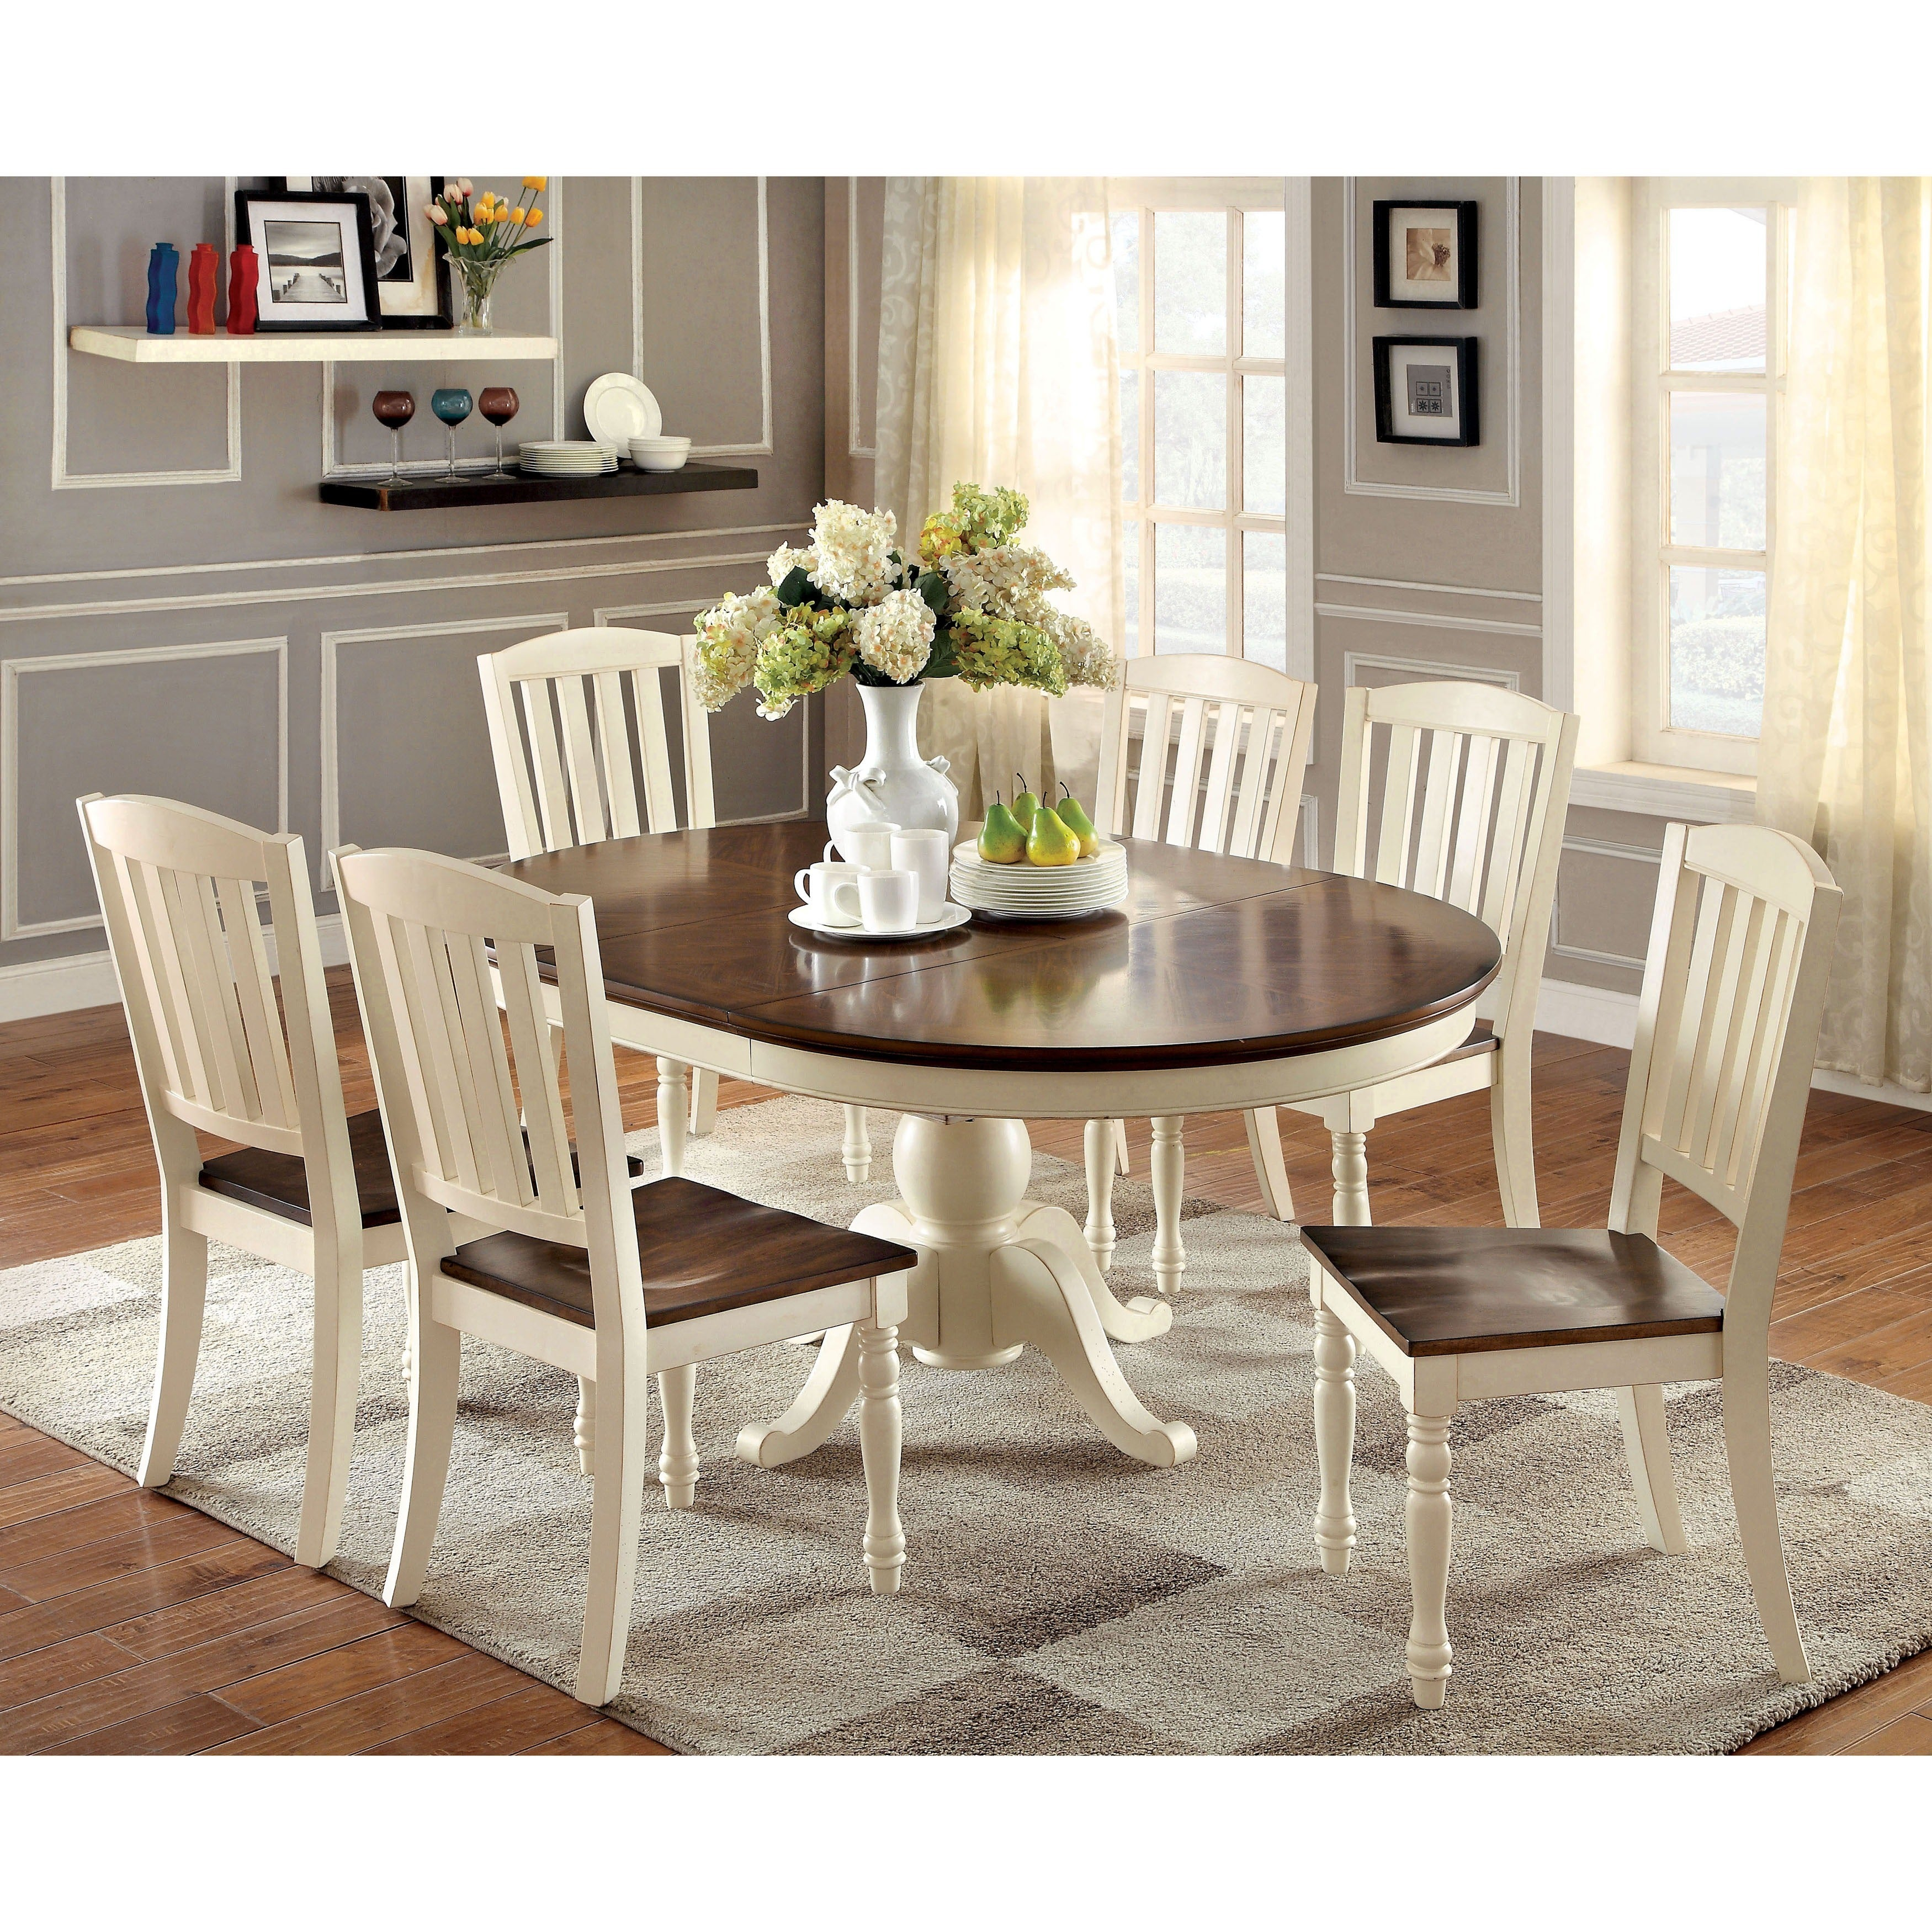 Furniture of America Bethannie Cottage Style 2 Tone Oval Dining